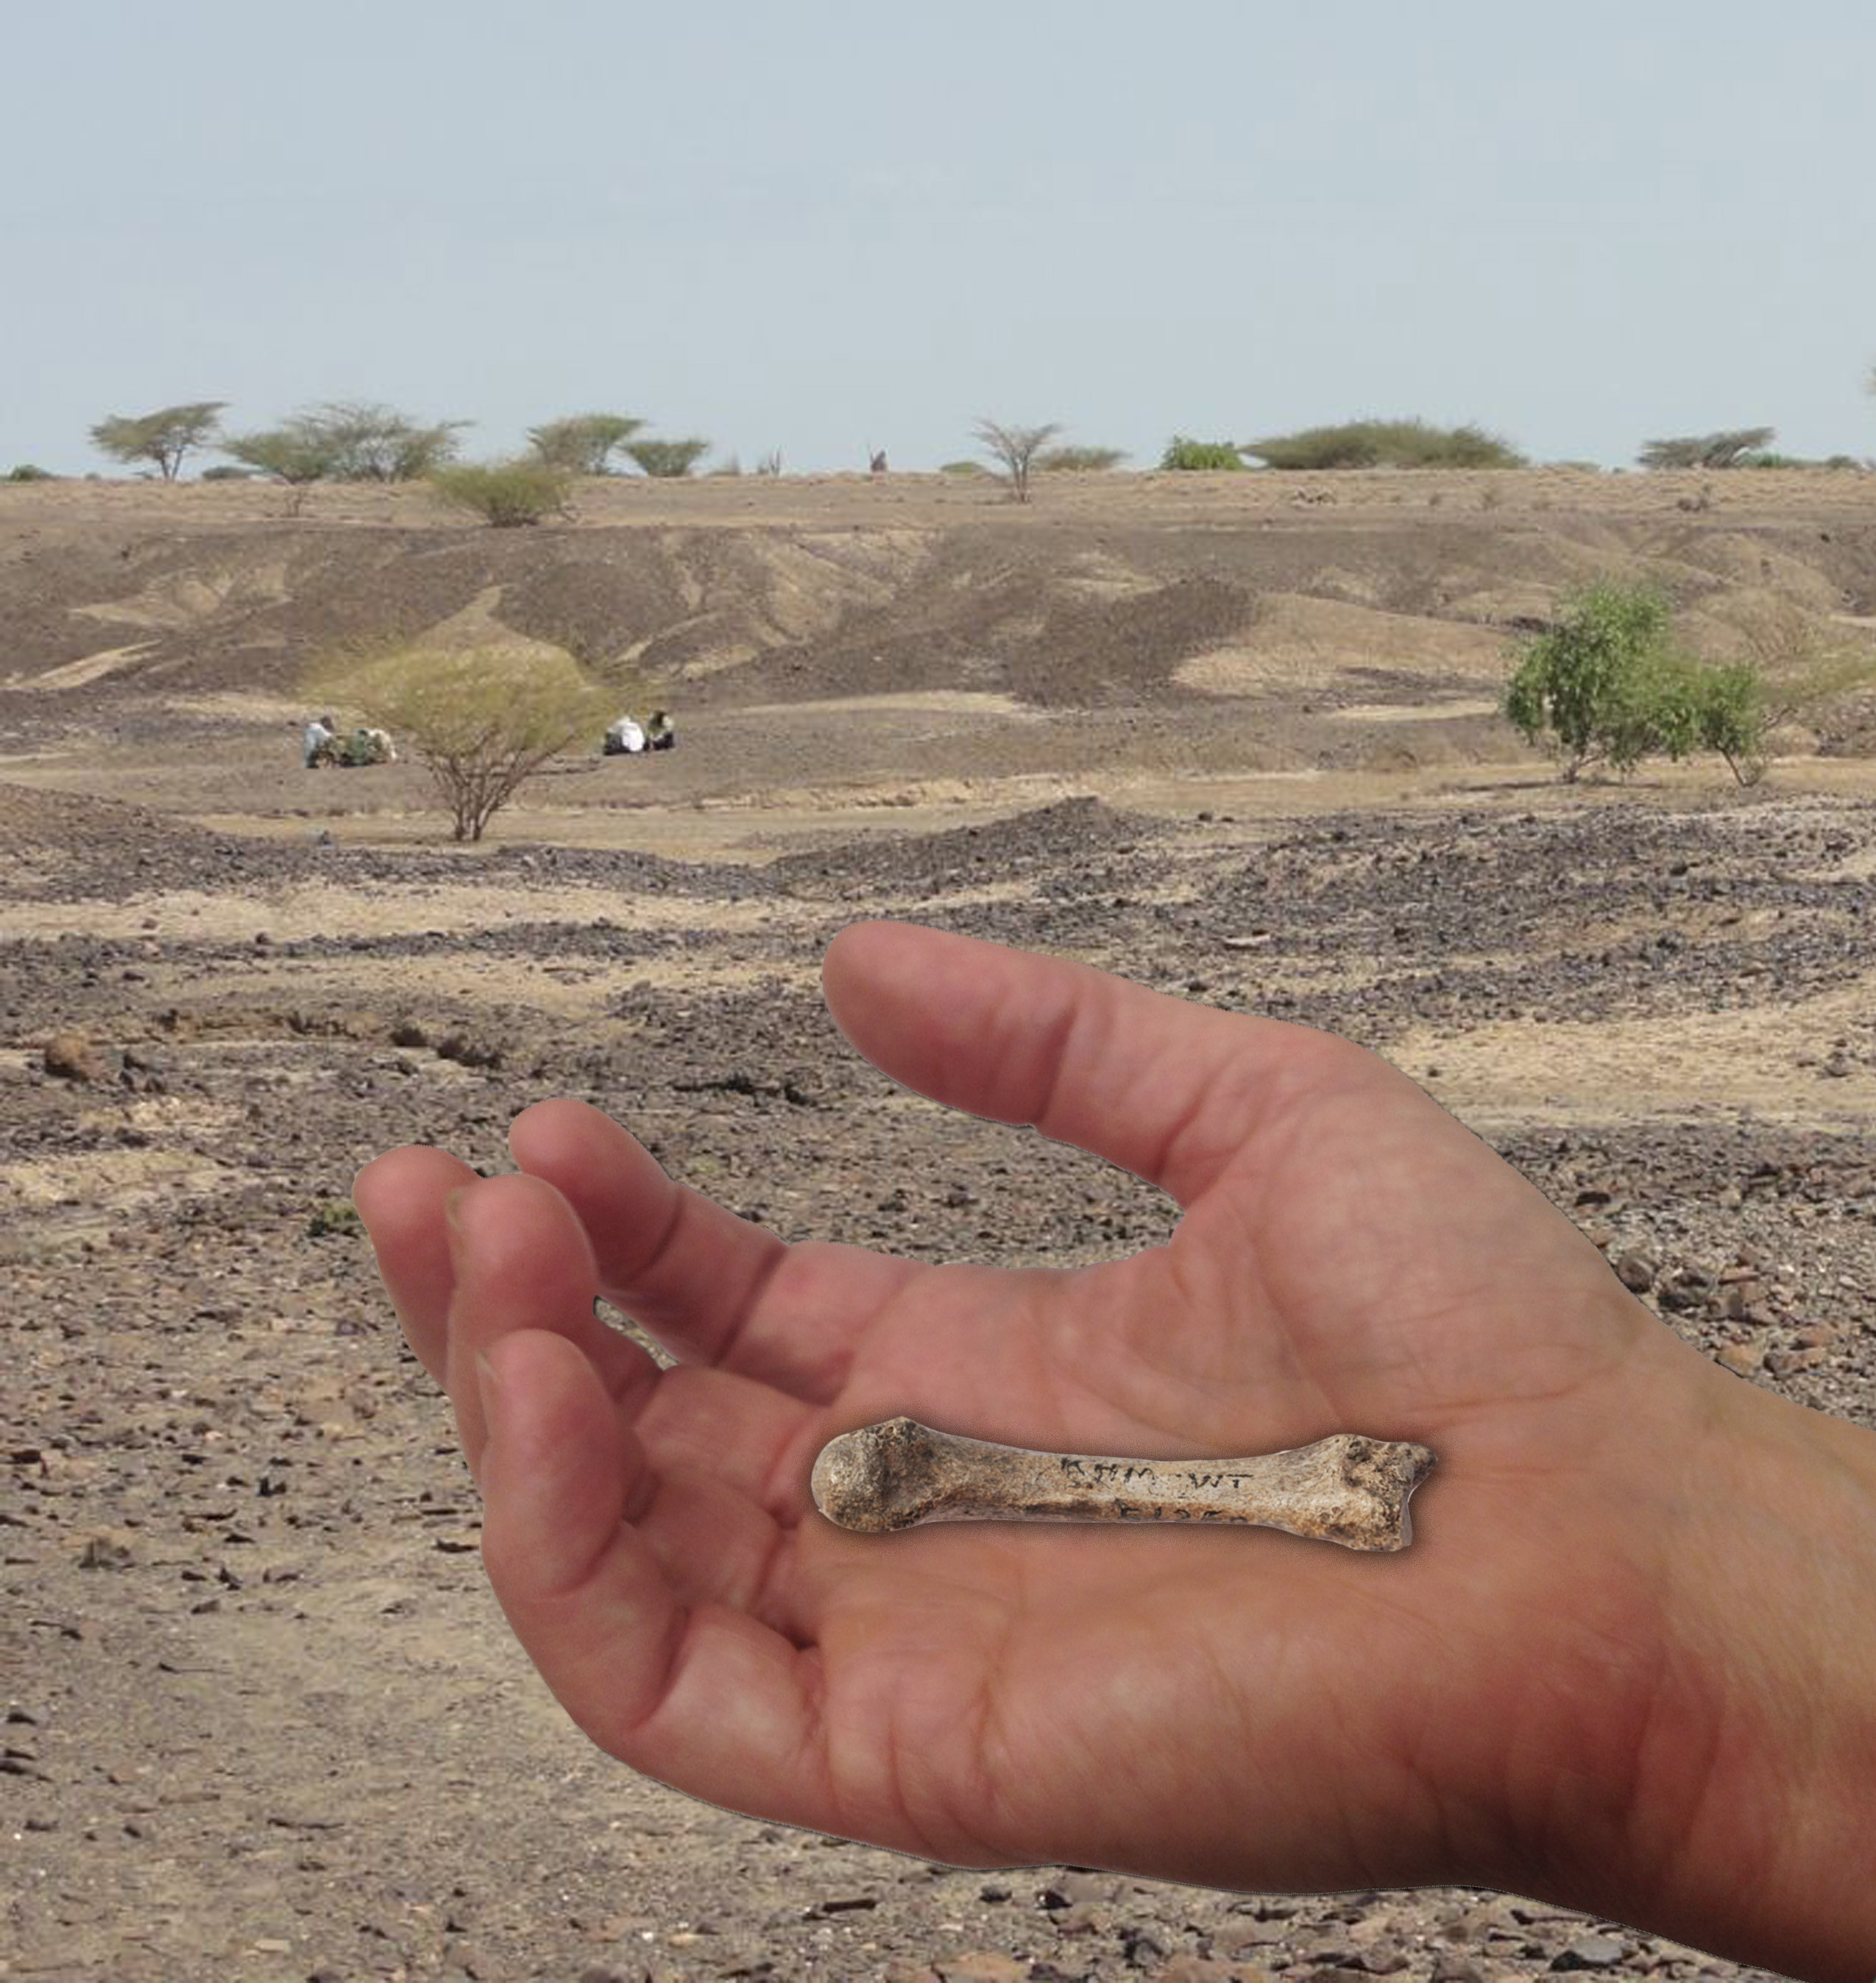 SPIRITUALITY SCIENCE - THE ORIGIN OF HUMAN SPECIES: The discovery of this Metacarpal Bone of the Middle Finger at Kaitio site, West Turkana, Kenya, that could be more than 1.42 million years old raised the hope of finding an intermediate link between the Human Species and other Anthropoid Apes.